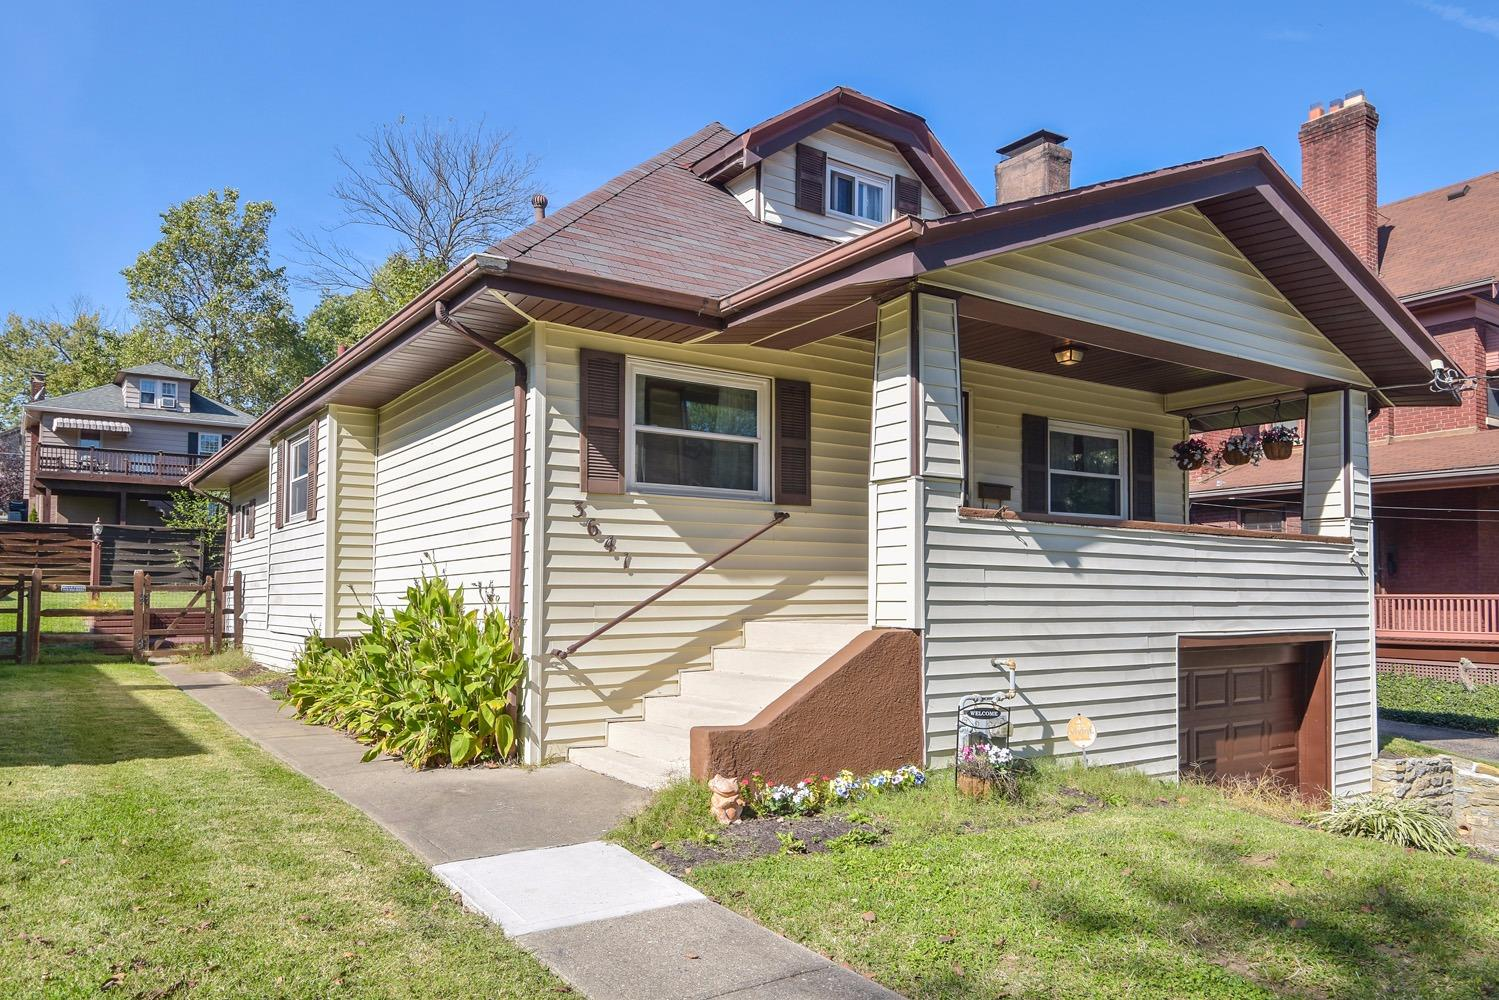 Excellent location in East Hyde Park. This charming Cape Cod has been well cared for & nicely updated. Amenities include 3 bedrooms, 2 full bathrooms, updated kitchen, wood deck, fenced back yard, & 1 car garage.  From this location you are less than a half mile to restaurants & pubs, 10 mins to I-71 & Columbia Parkway.